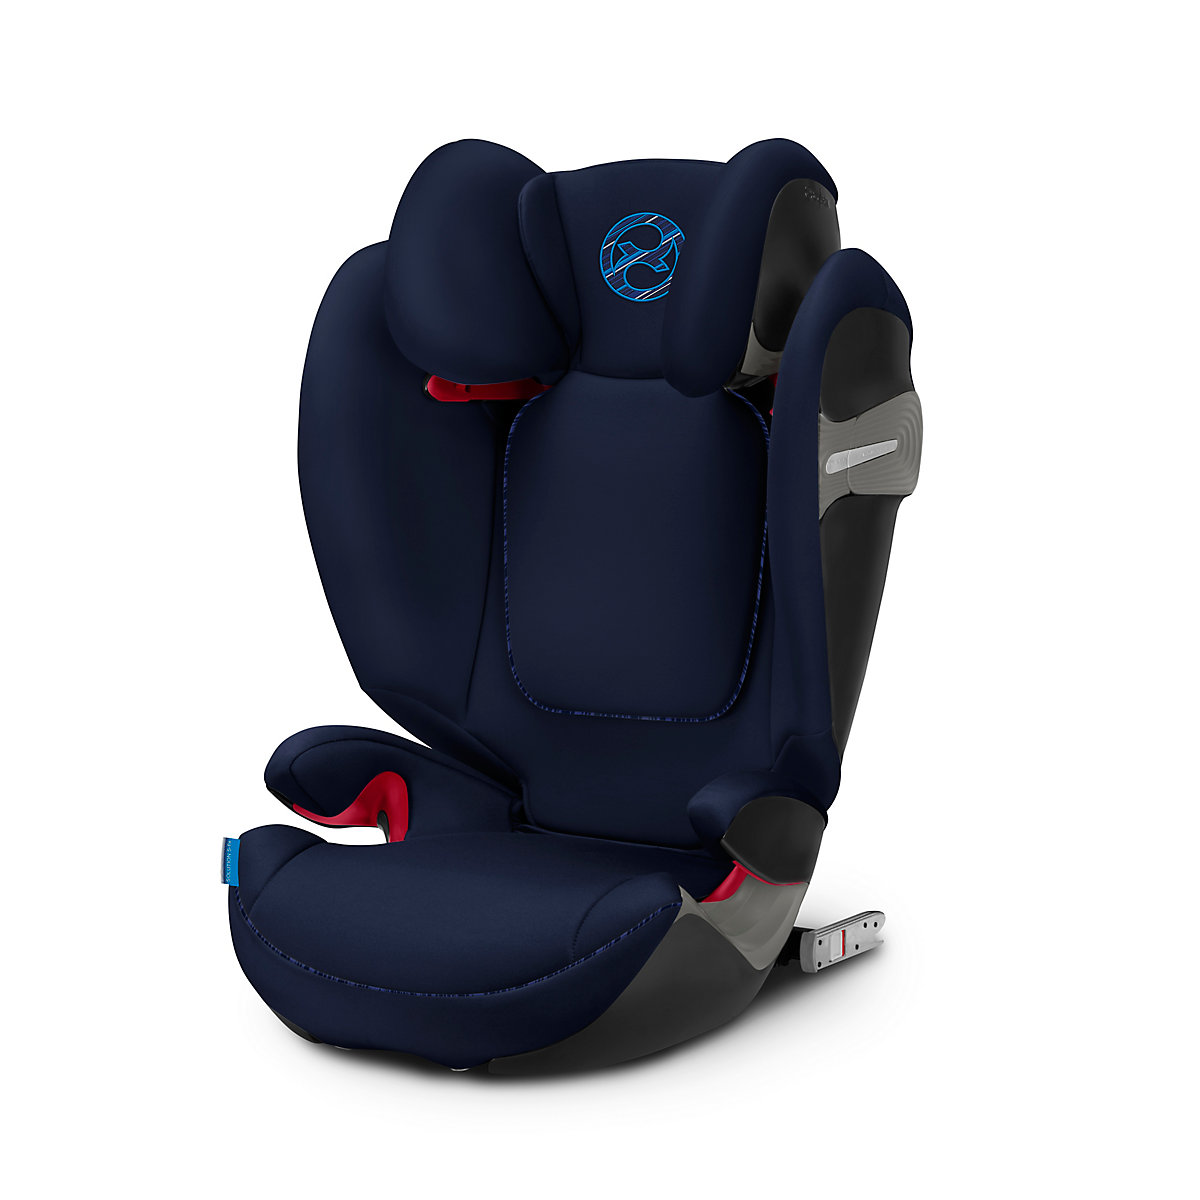 Cybex solution s-fix highback booster car seat - indigo blue